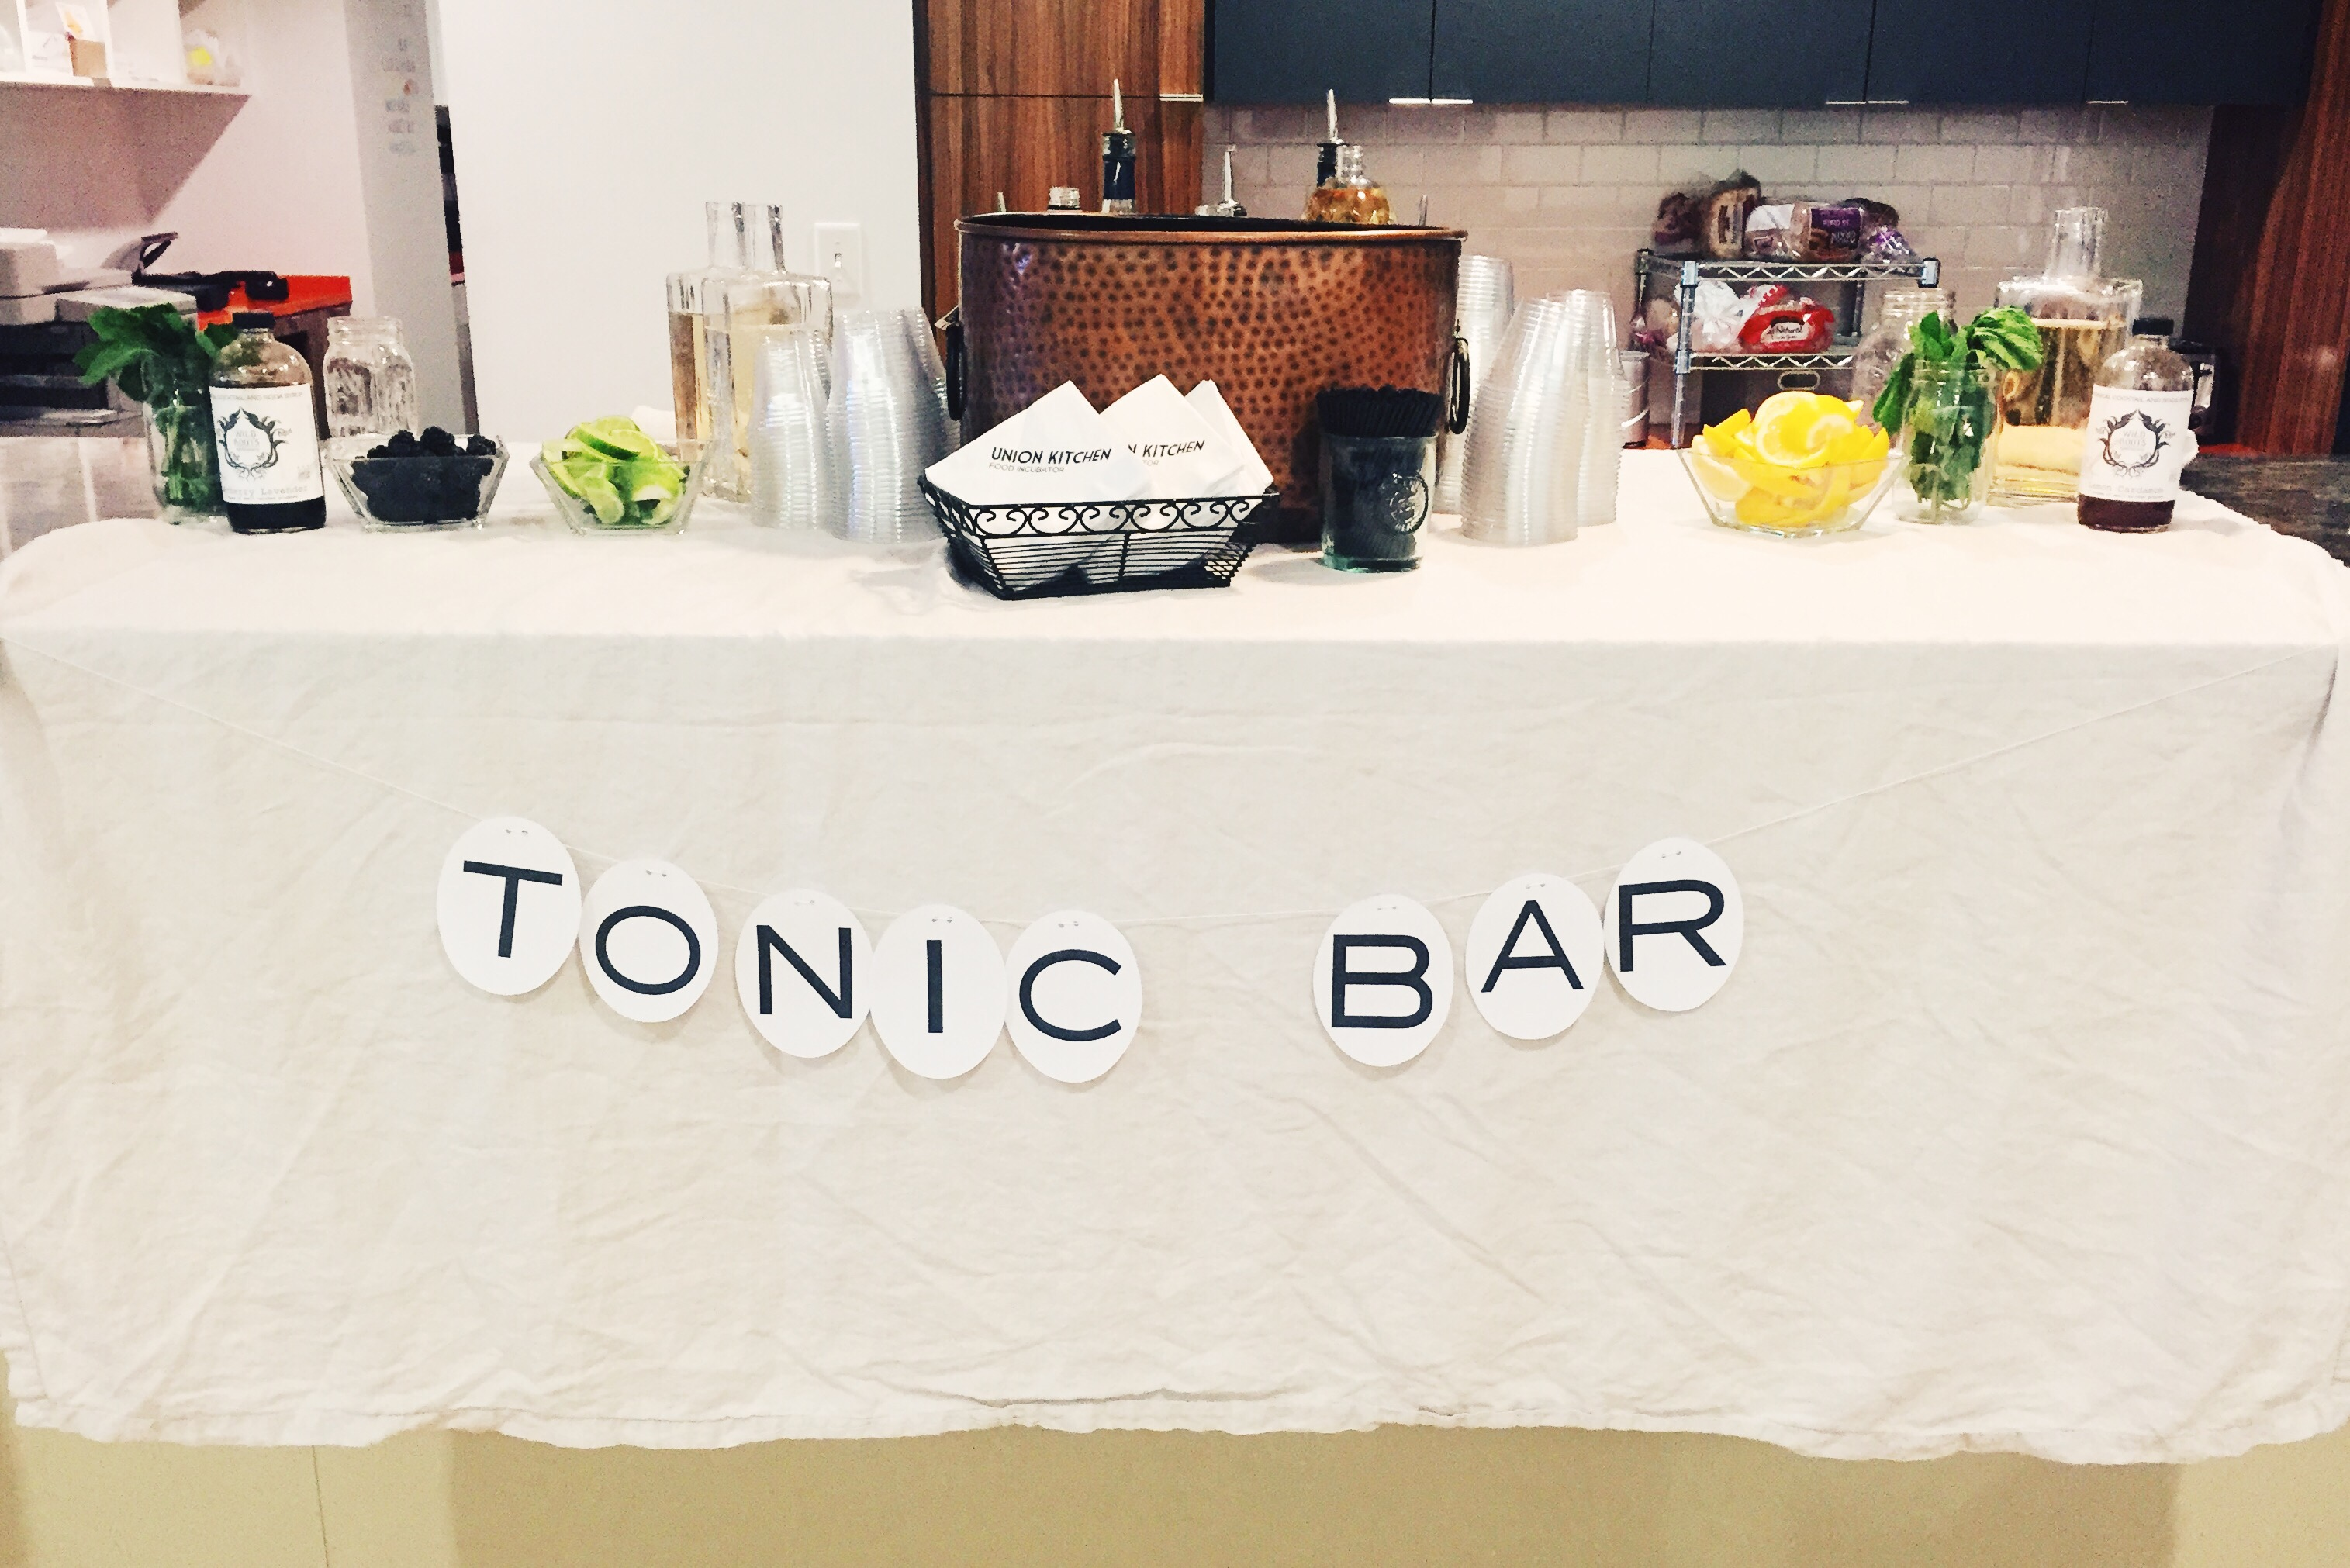 Tonic Bar @ Opower